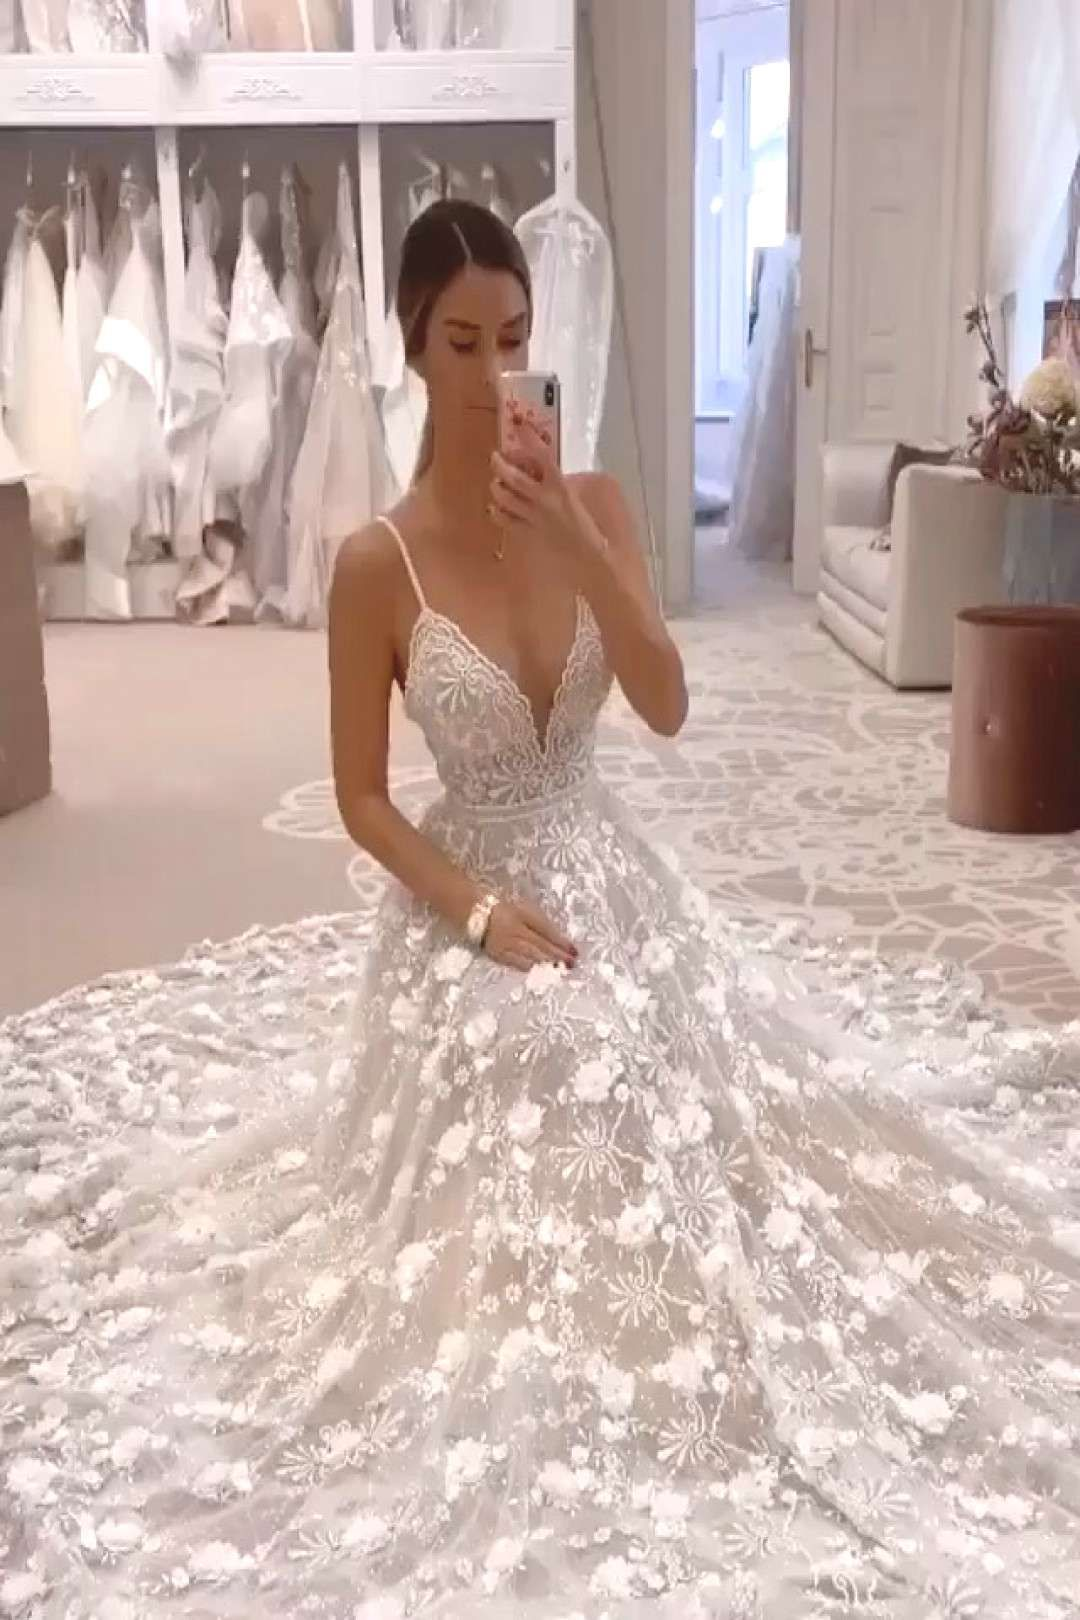 #gorgeous #follow #fashio #daily #page #your #dose #yes #for #or #no #my #of Gorgeous Yes or No ? Follow my page for your daily dose of fashioYou can find Fashion dresses and more on our website.Gorgeous Yes or No ? Follow my page fo...